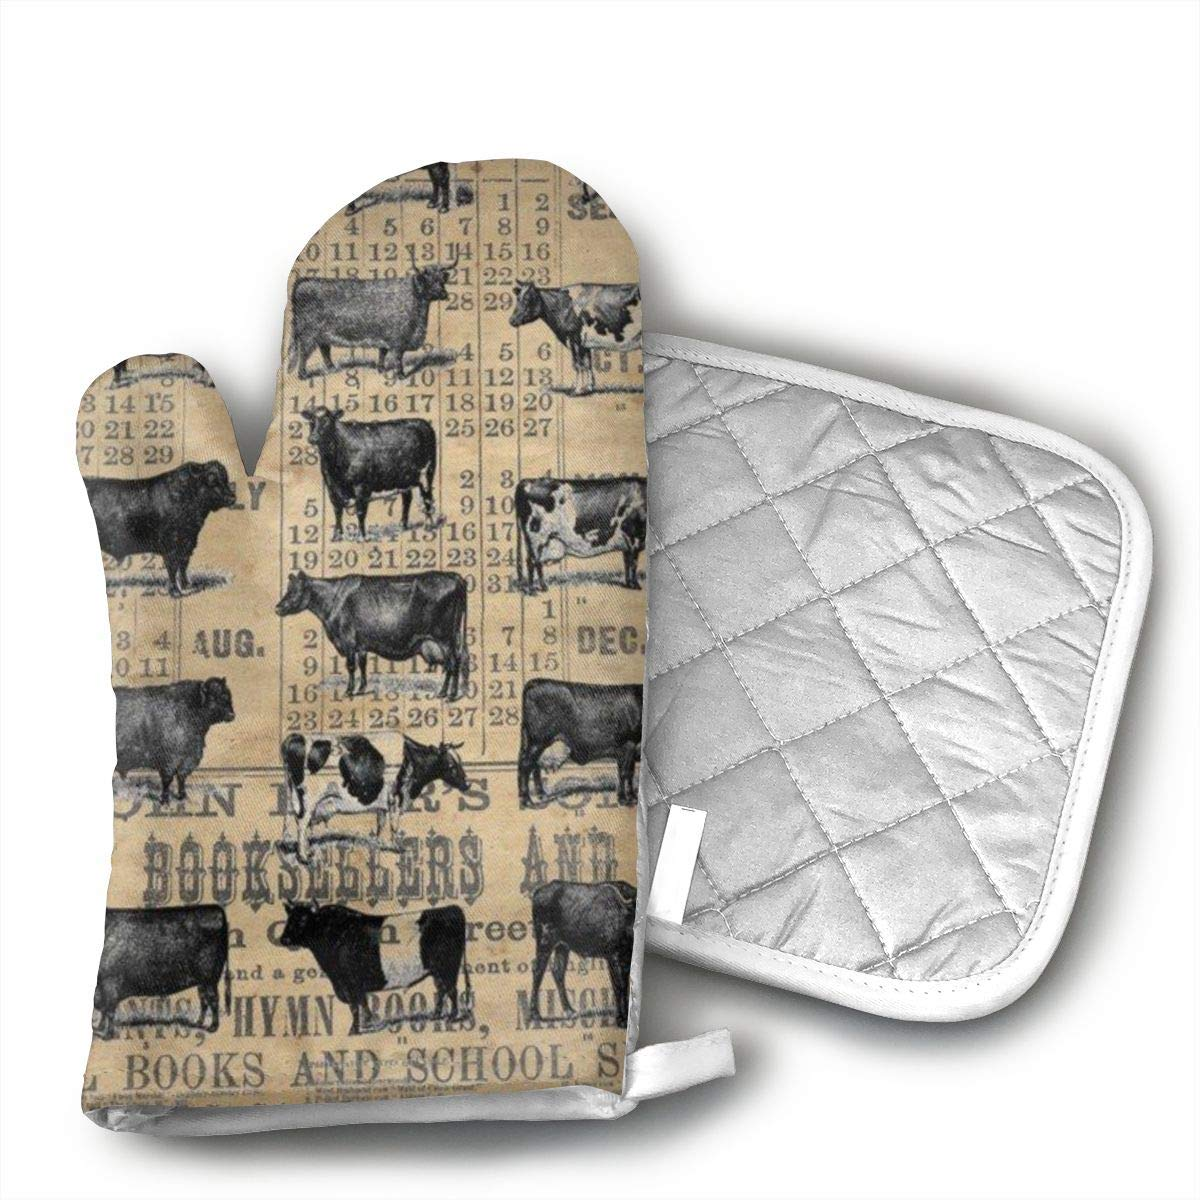 UYRHFS Vintage 1896 Cows Study On Antique Lancaster County Almanac Oven Mitts and Pot Holder Kitchen Set with, Heat Resistant, Oven Gloves and Pot Holders 2pcs Set for BBQ Cooking Baking